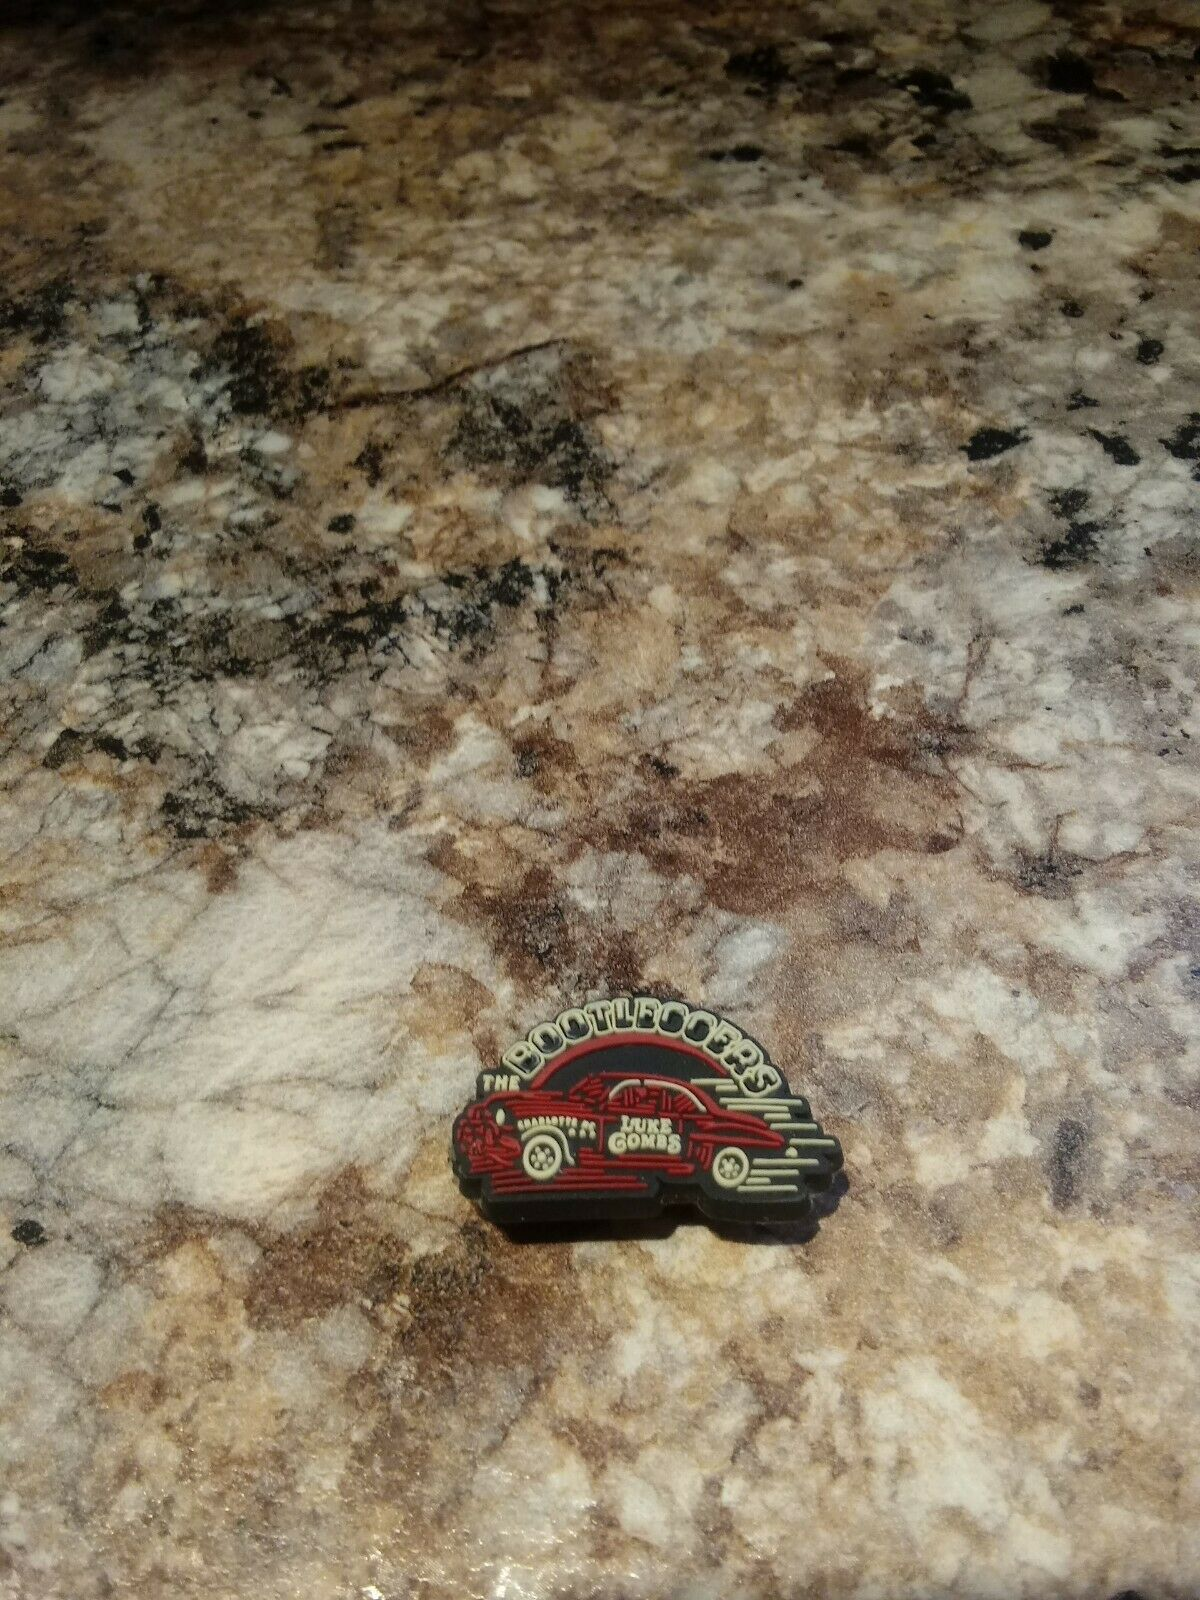 Luke Combs Bootleggers Hotrod Charm For Crocs, Charm Only Free Shipping.